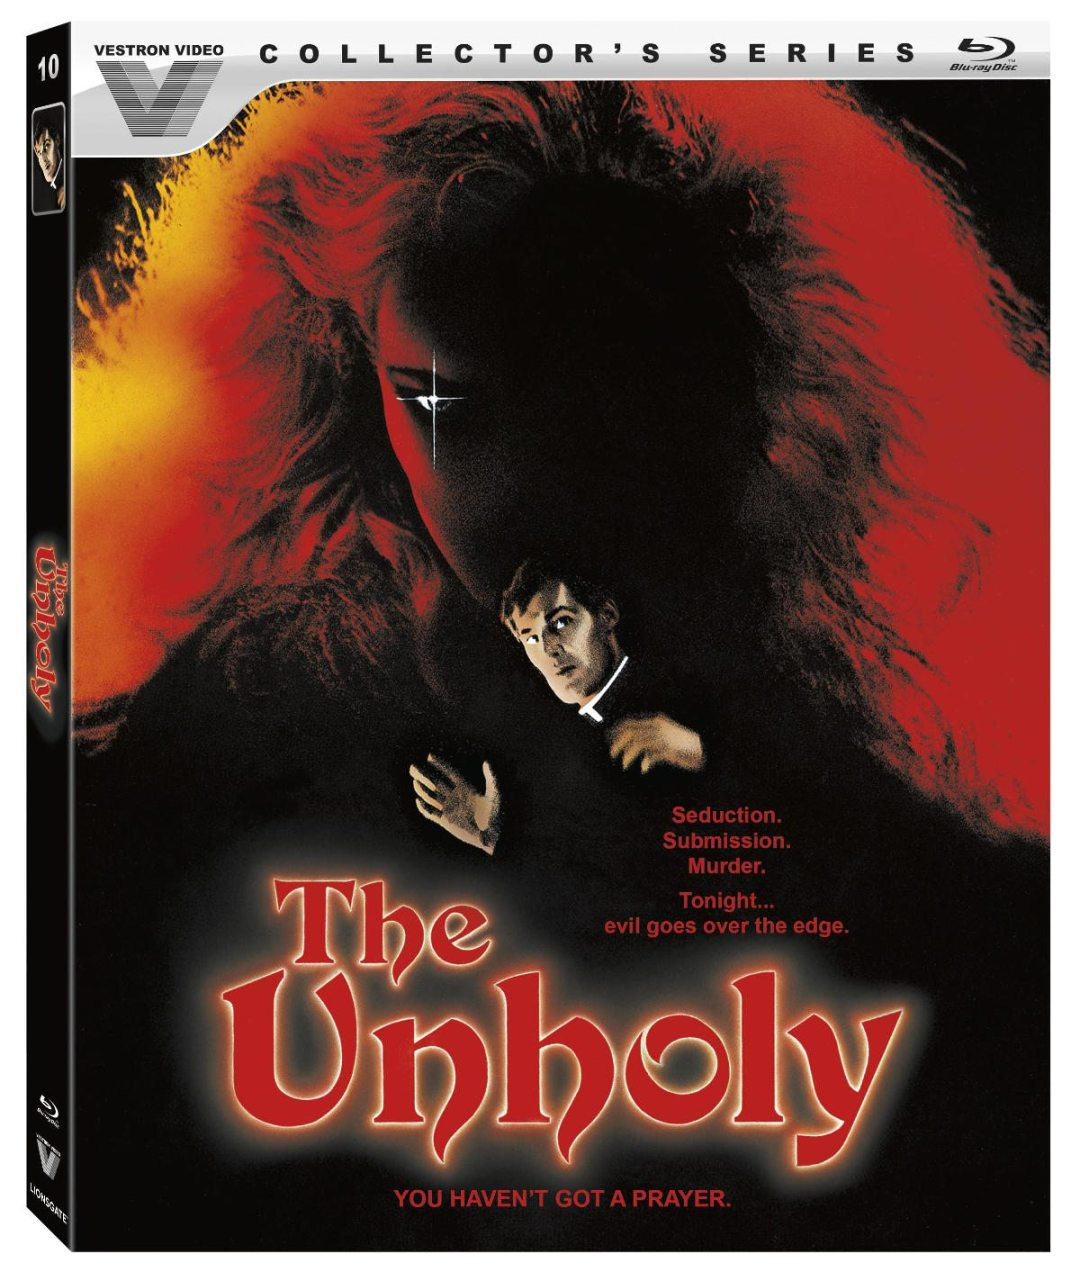 This June You Can Take Home 'The Unholy'